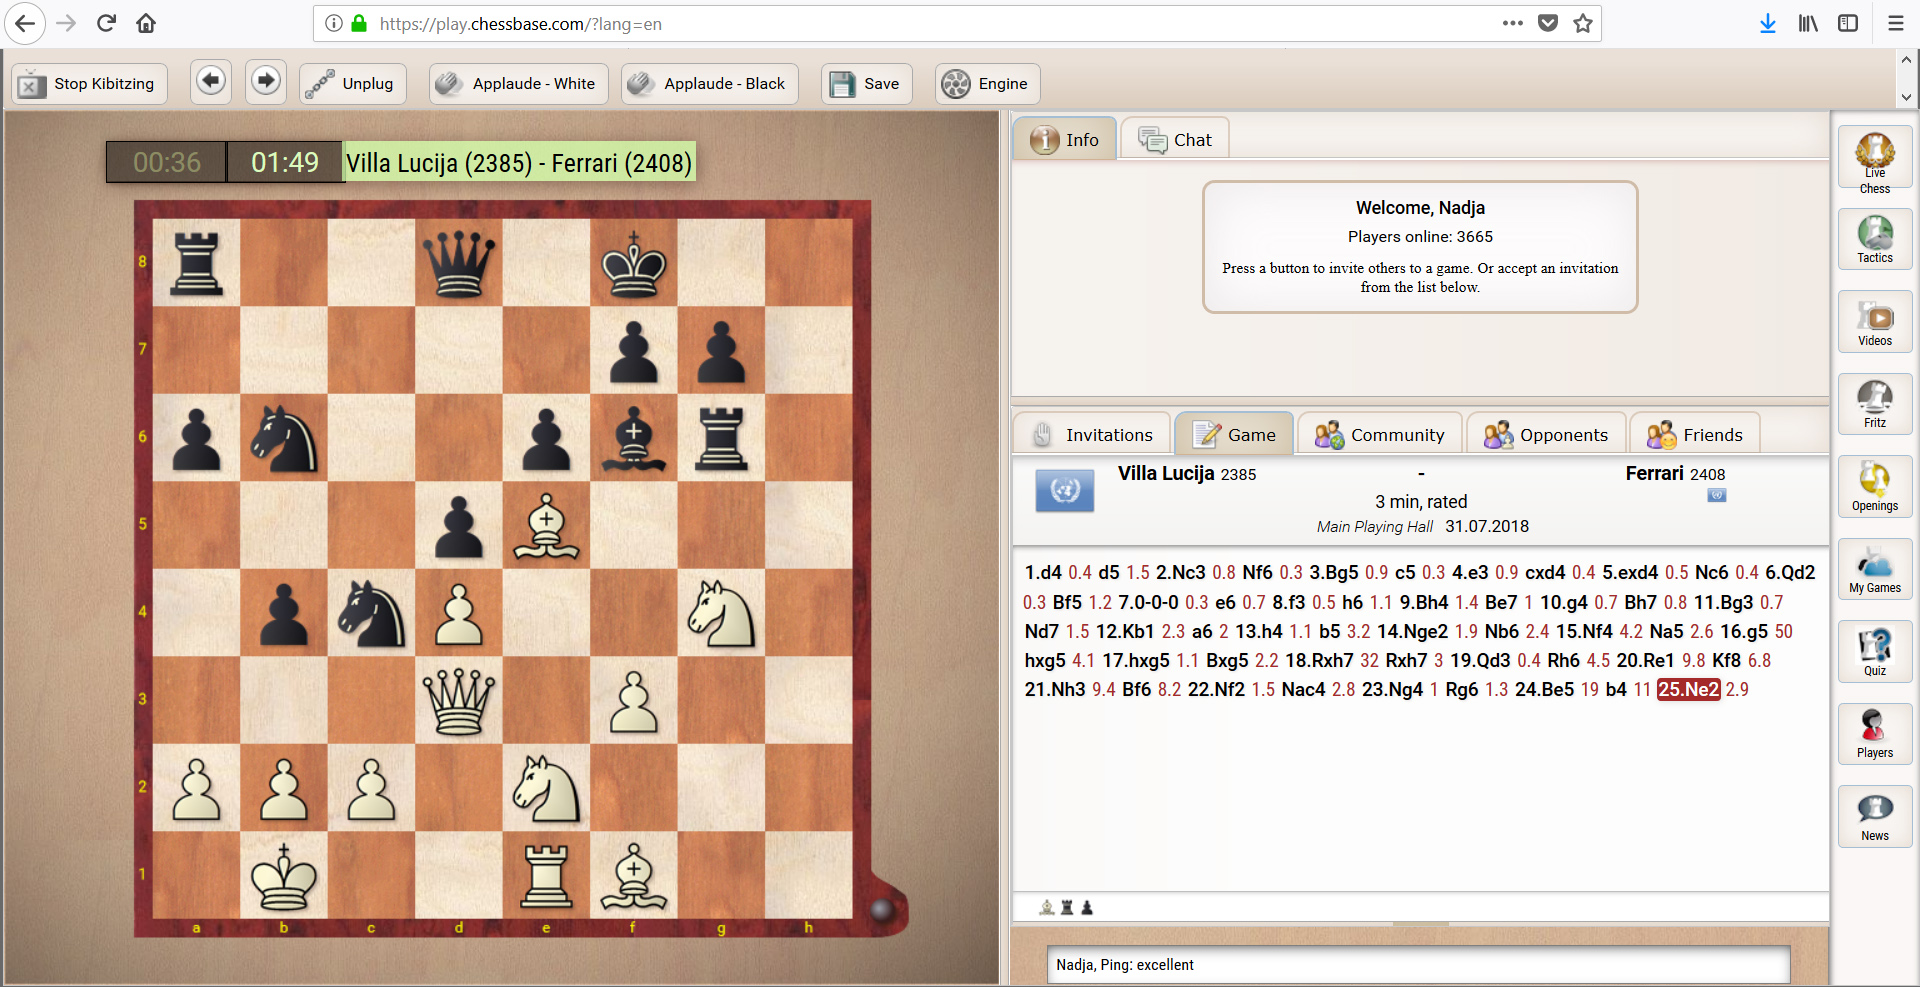 Play.chessbase.com screen